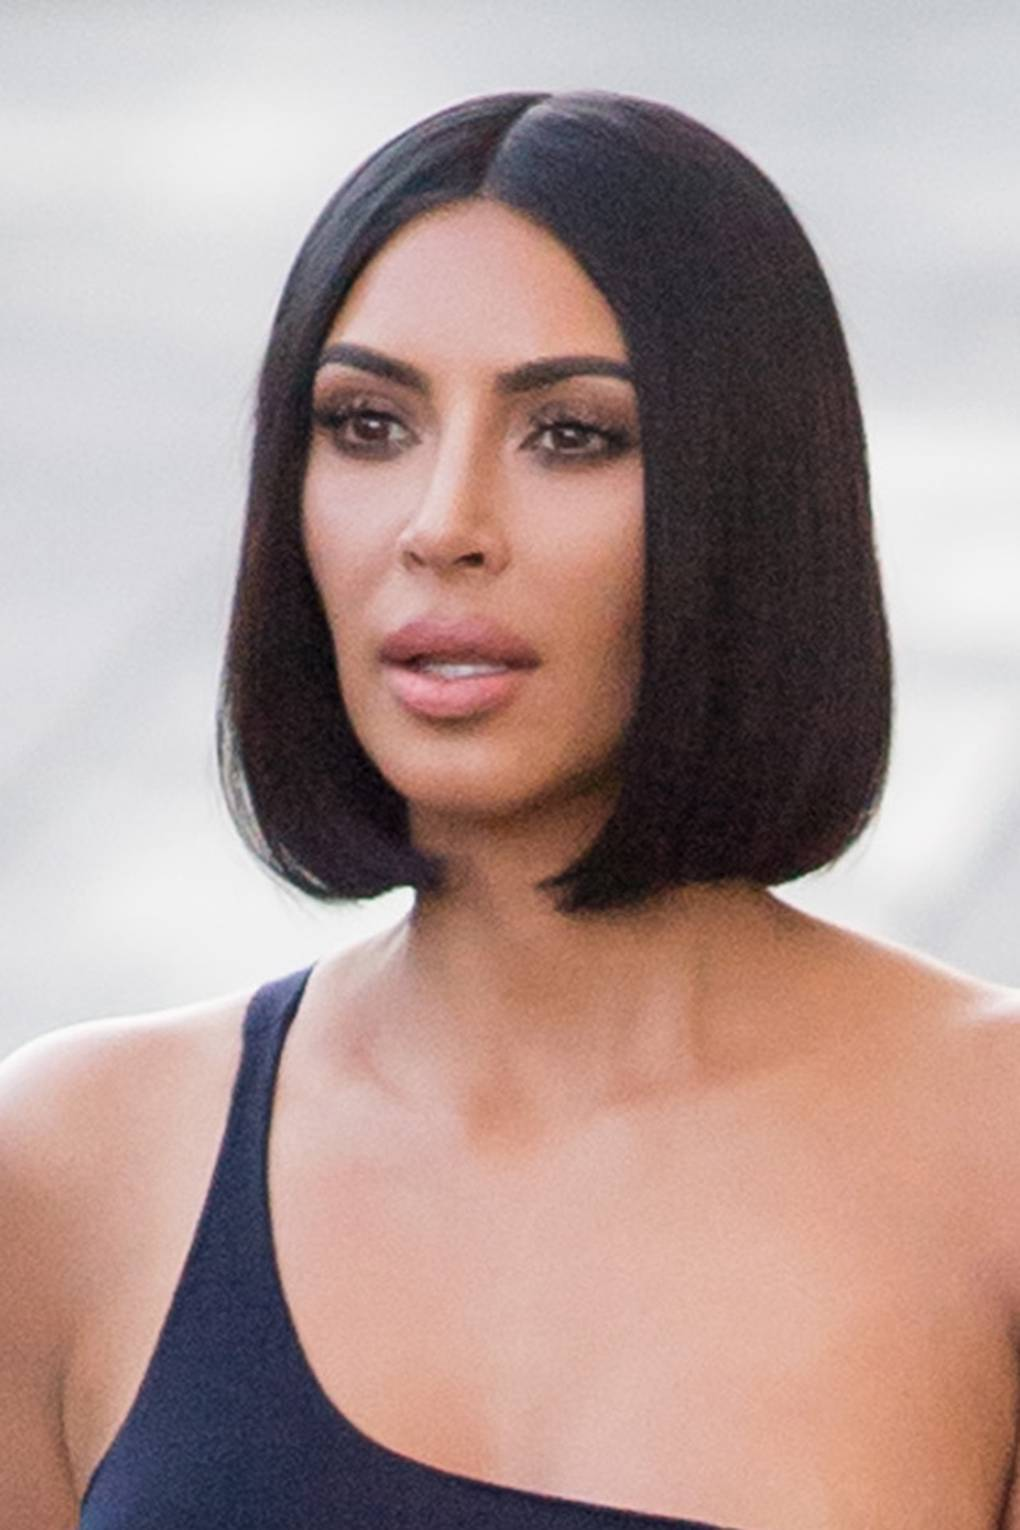 lob hairstyles: how to style your long bob | glamour uk